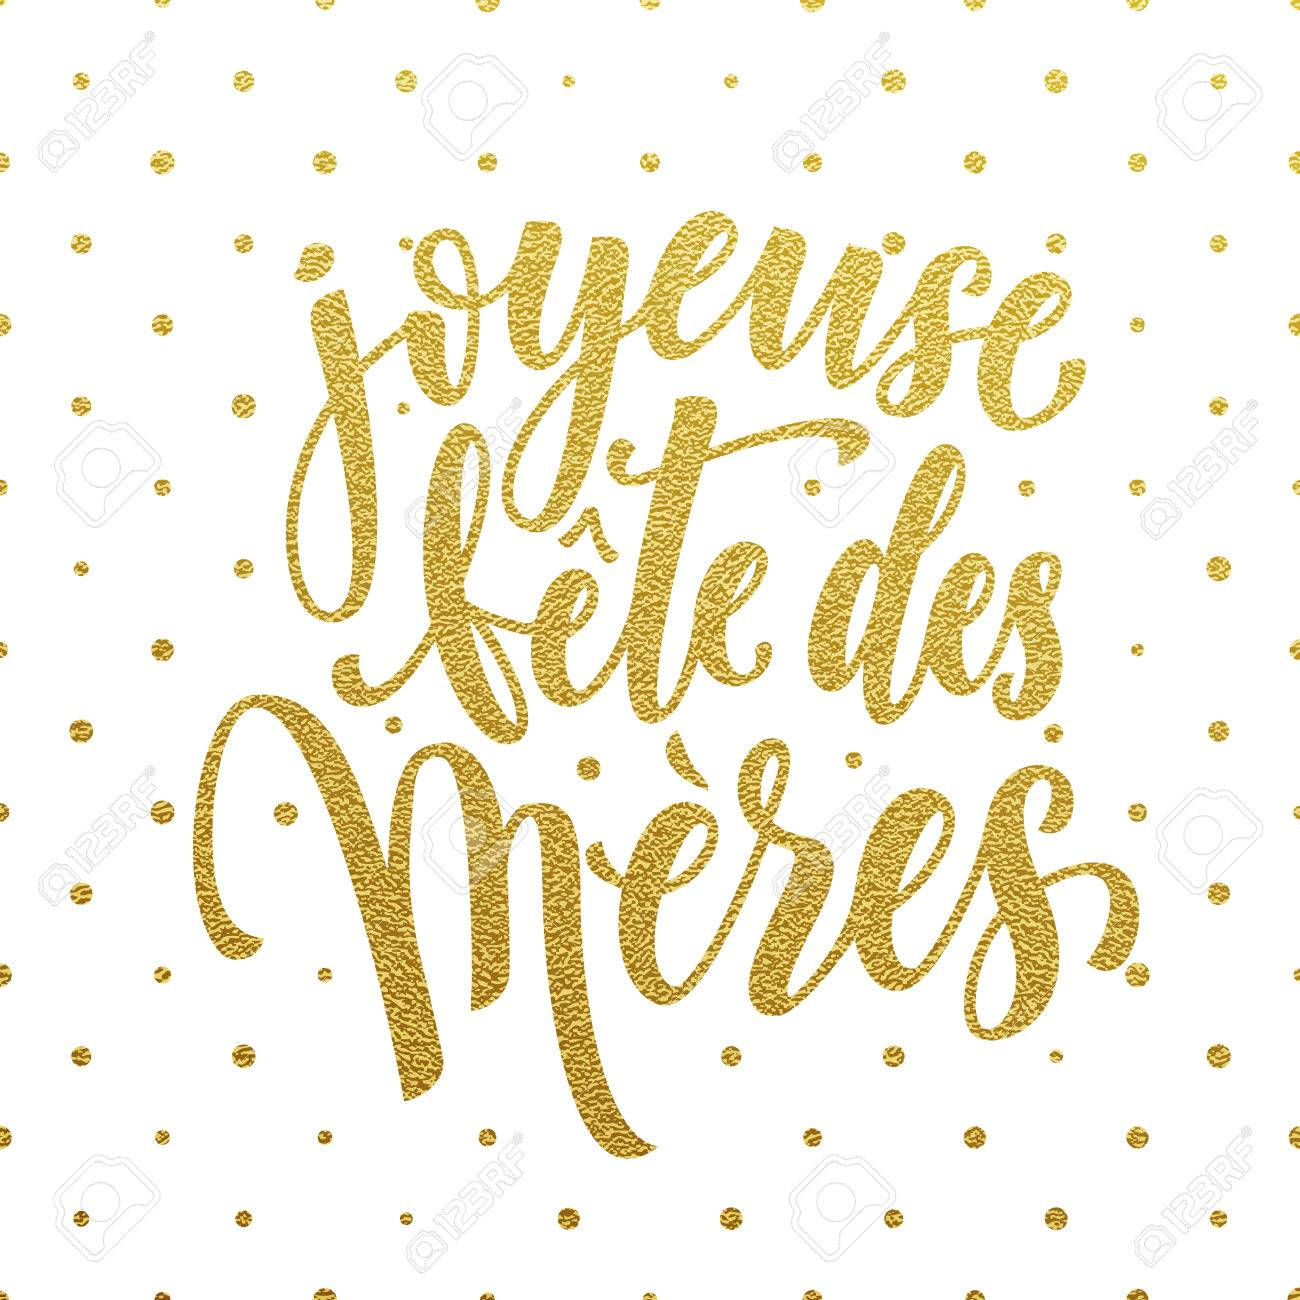 Joyeuse Fete des Meres Mother's Day in French. Vector greeting card title with gold glitter polka dot pattern. Hand drawn gold glitter calligraphy lettering. - 57341565